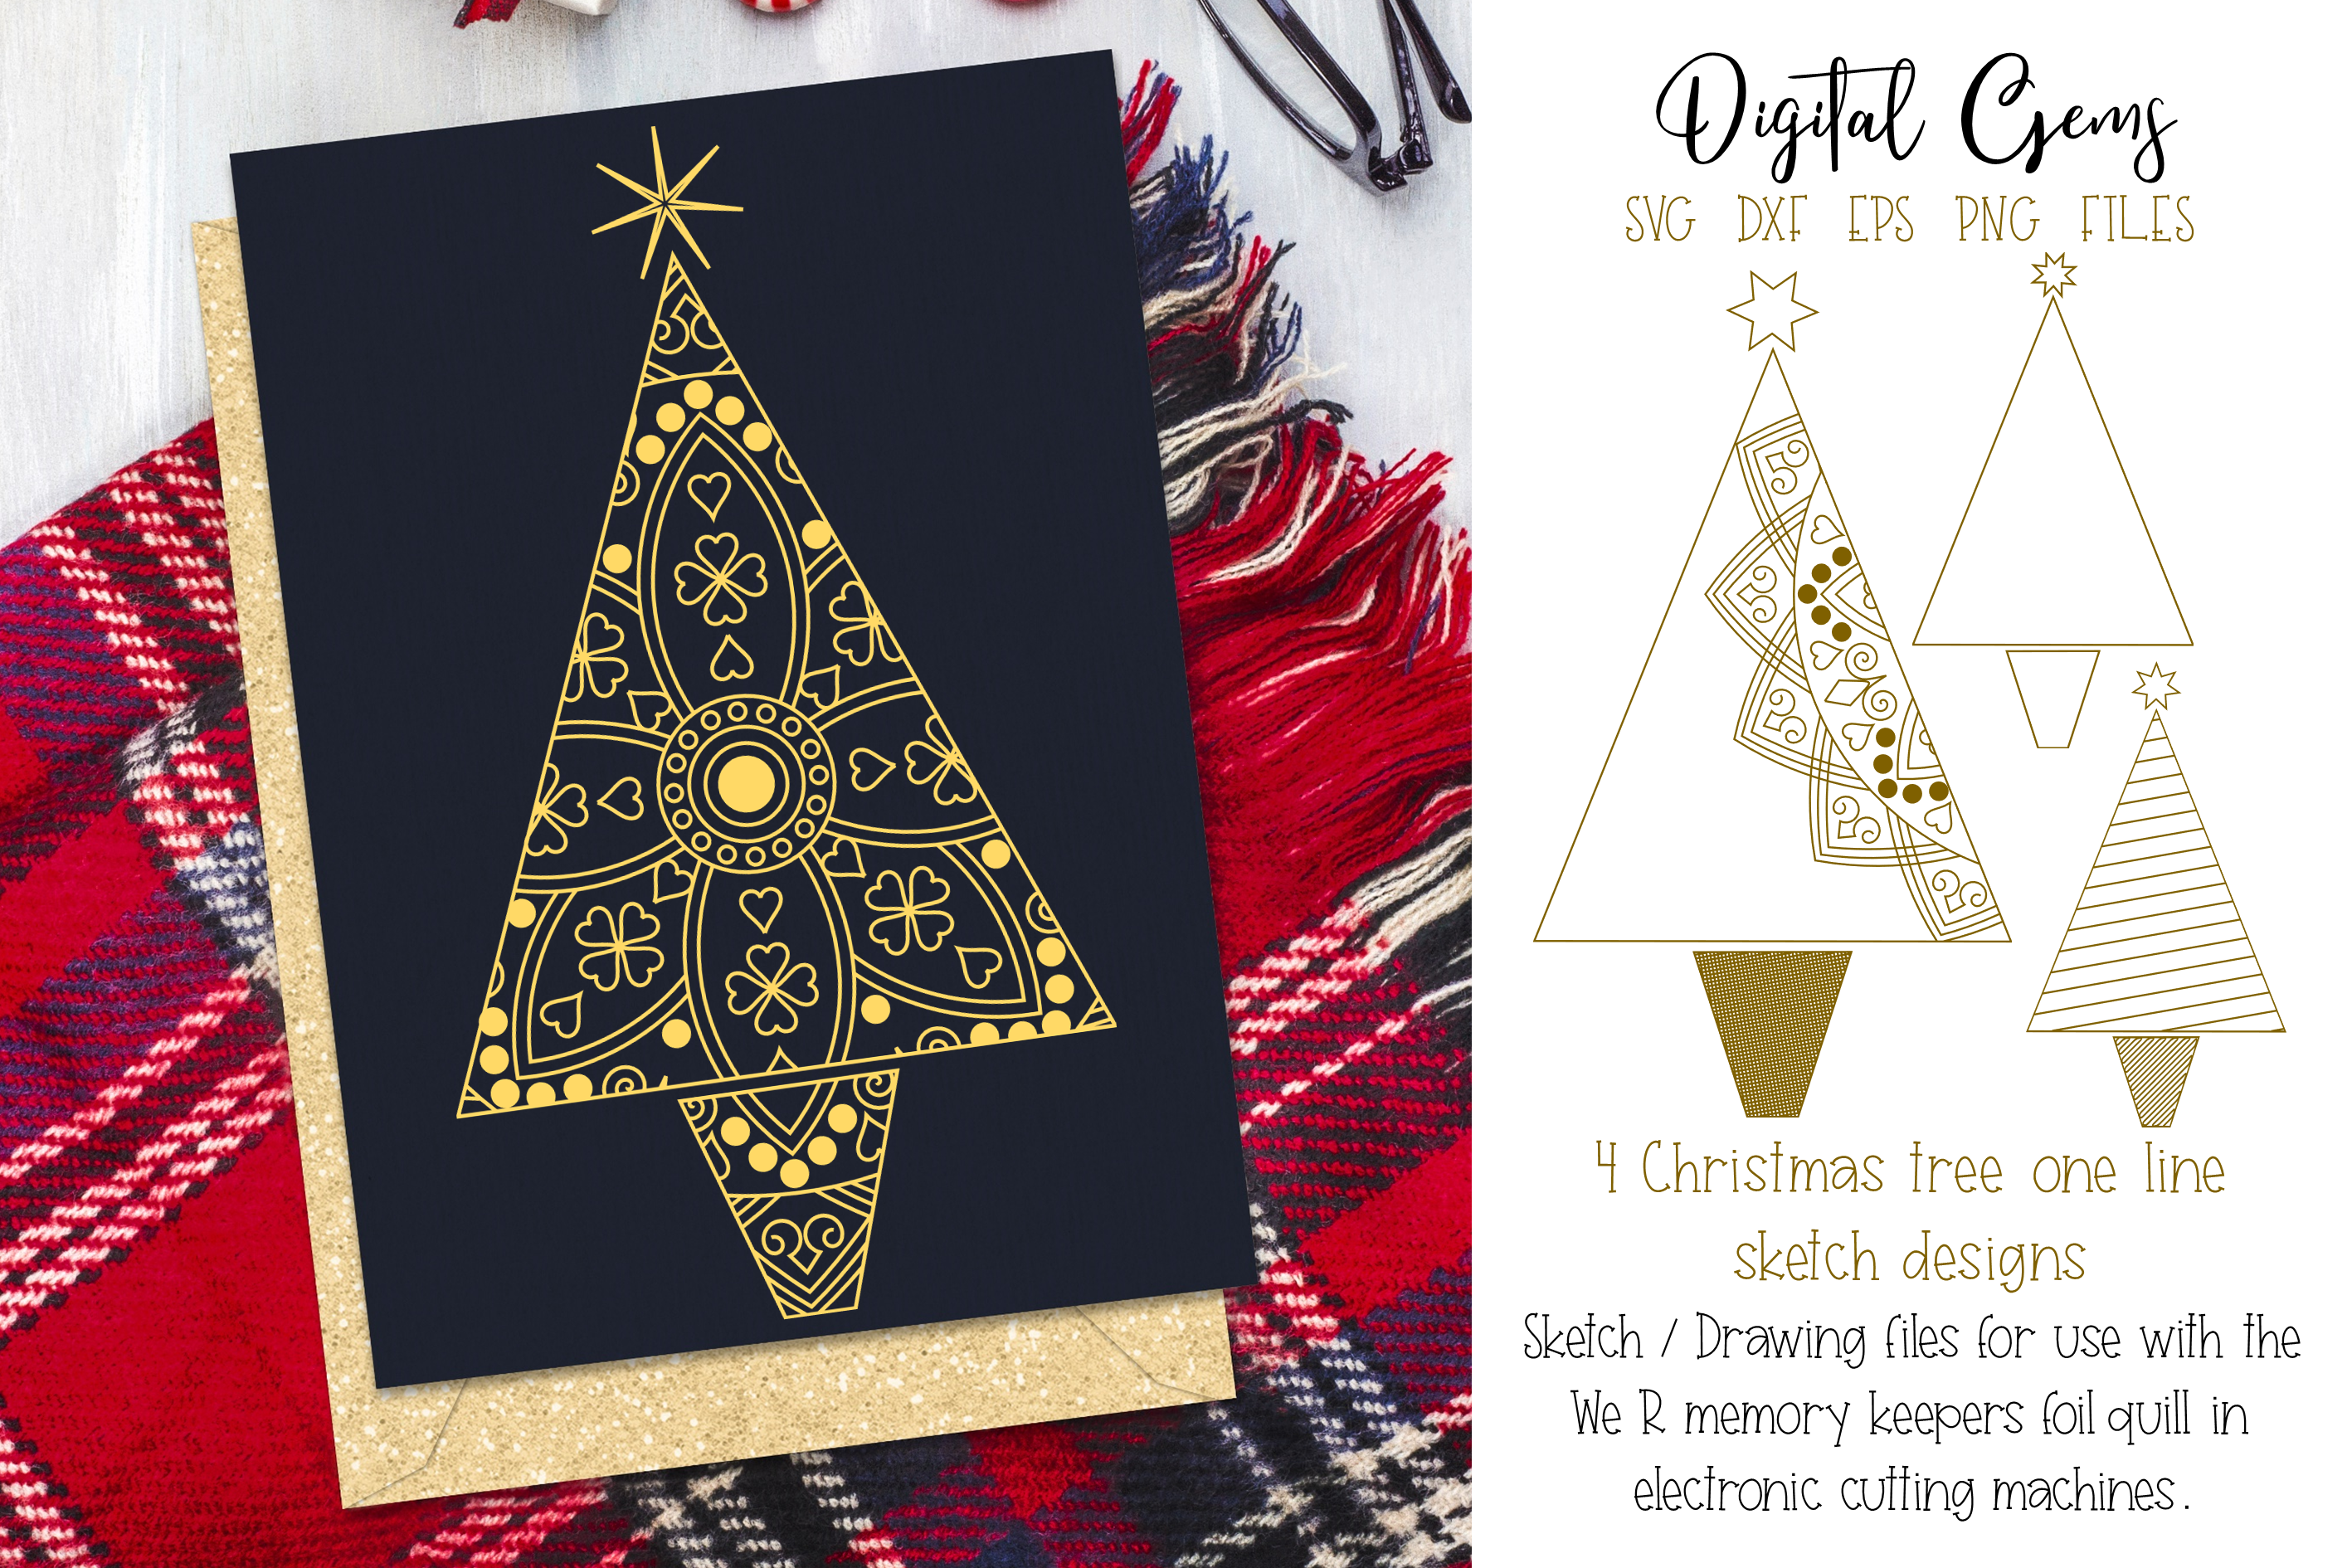 Christmas tree foil quill / sketch single line files example image 1